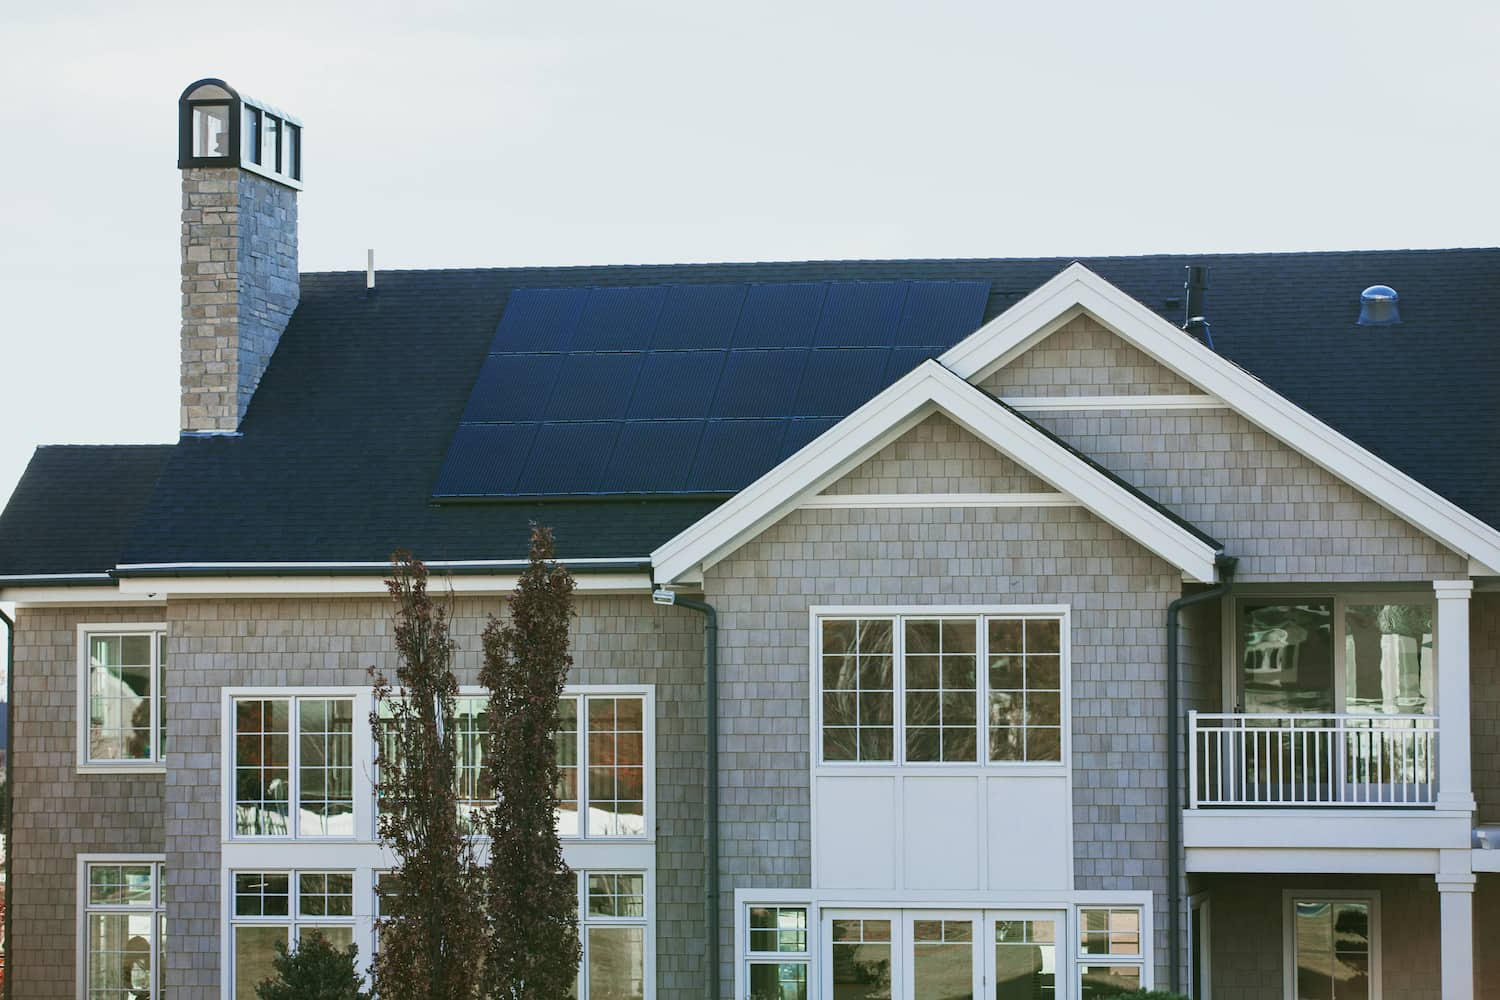 Eco-conscious solar panels on tile roof of modern coastal-style home